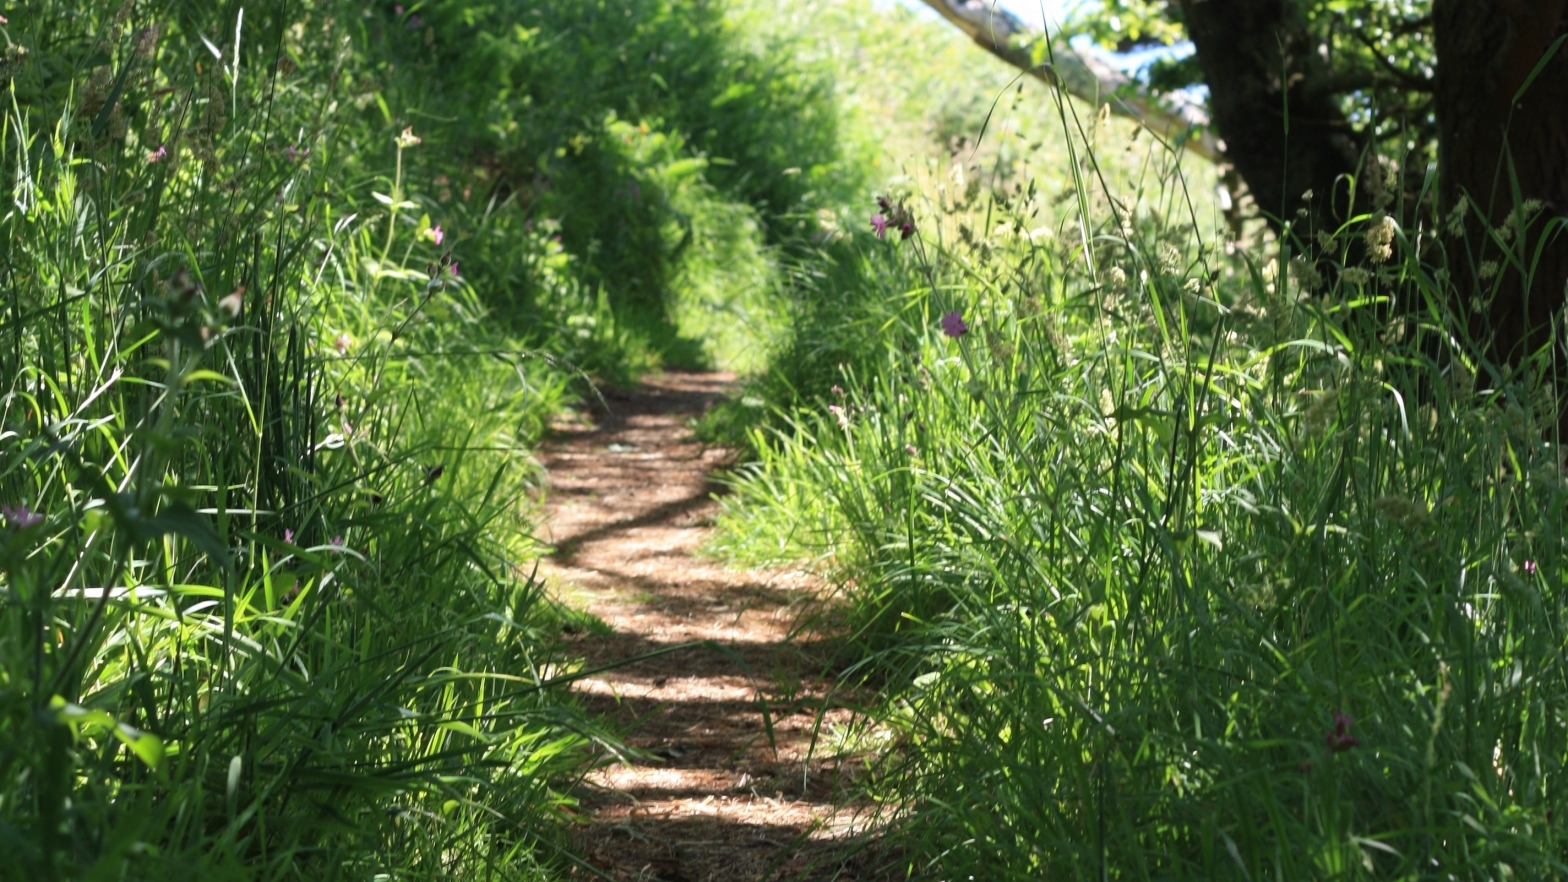 Image is of a winding footpath through summer grasses, wildflowers and the shade of a tree